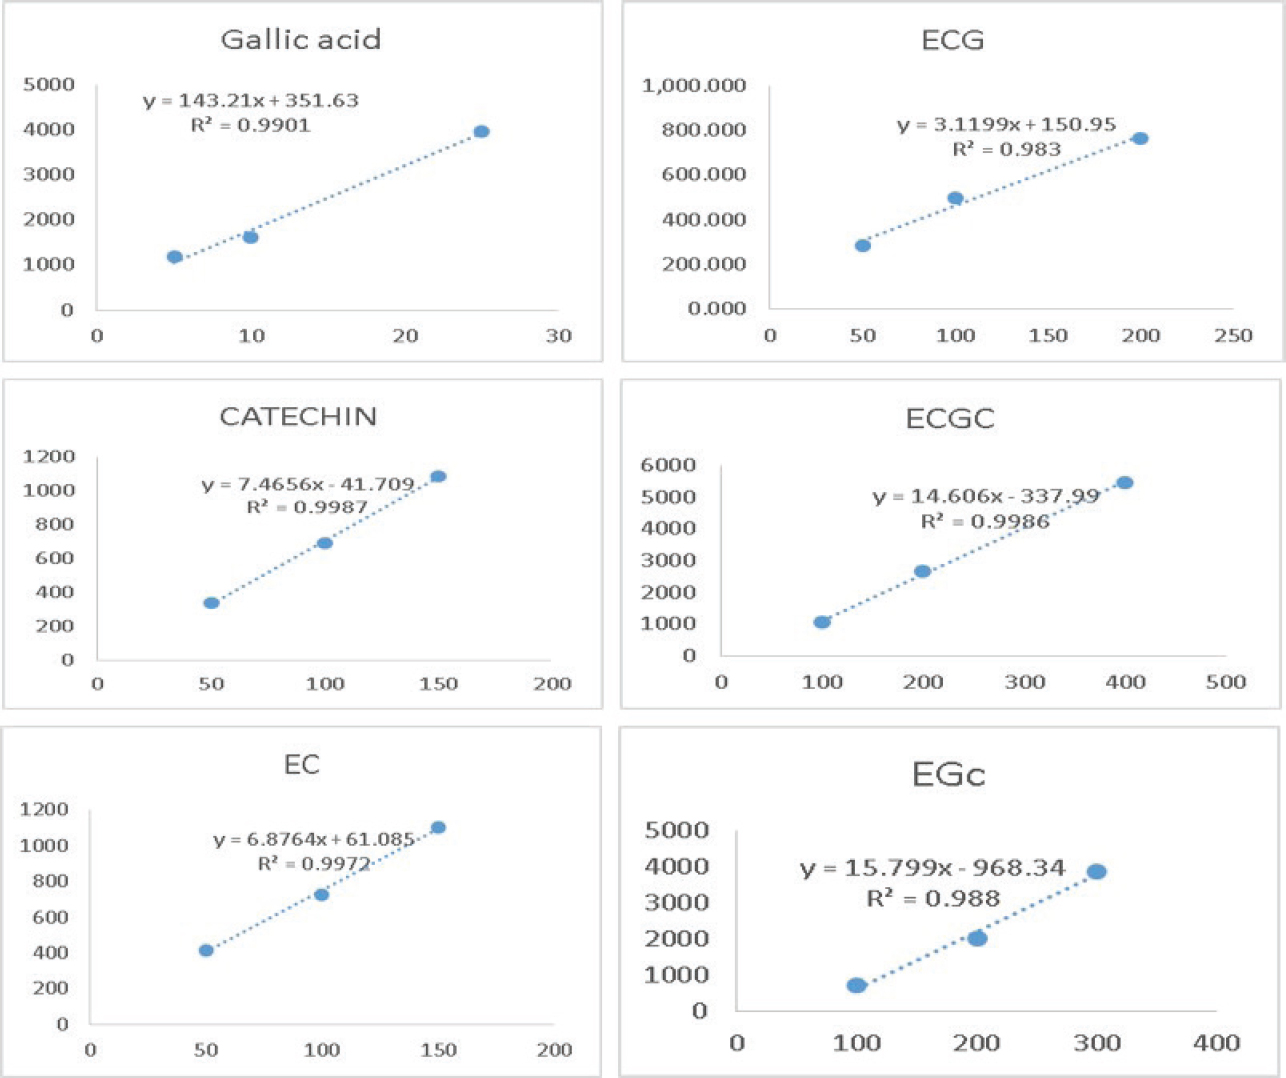 Figure 7: Linear caffeine calibration graphs for each standard concentrations (μg/mL) against the peak areas GA, Cf, C, EC, EGC, EGCG, and ECG to obtain the slope and intercept value